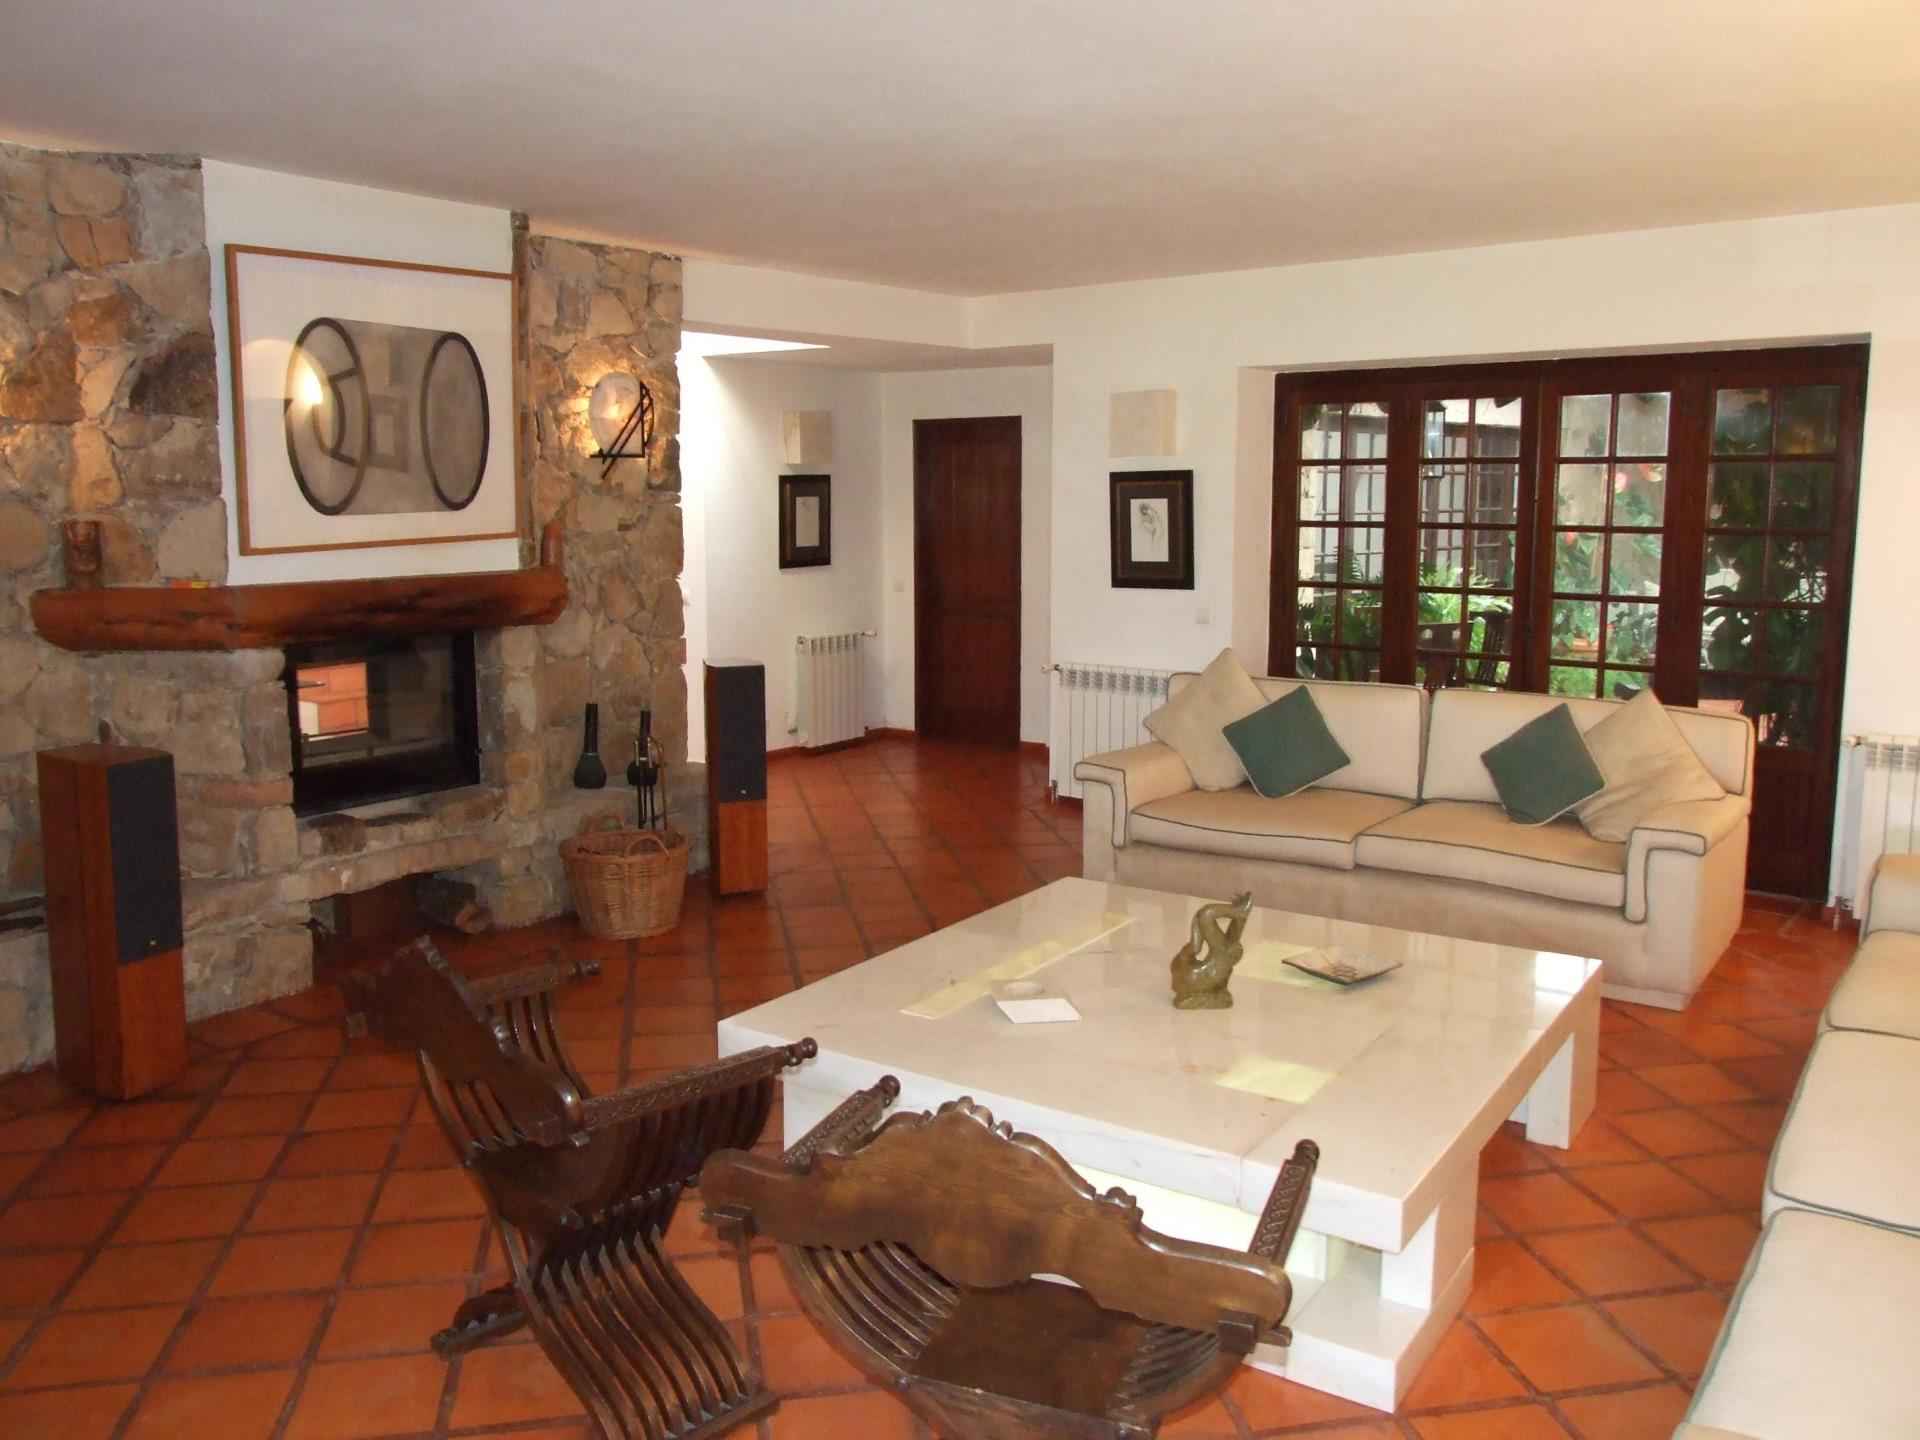 Single Family Home for Sale at House, 4 bedrooms, for Sale Azoia, Sintra, Lisboa Portugal